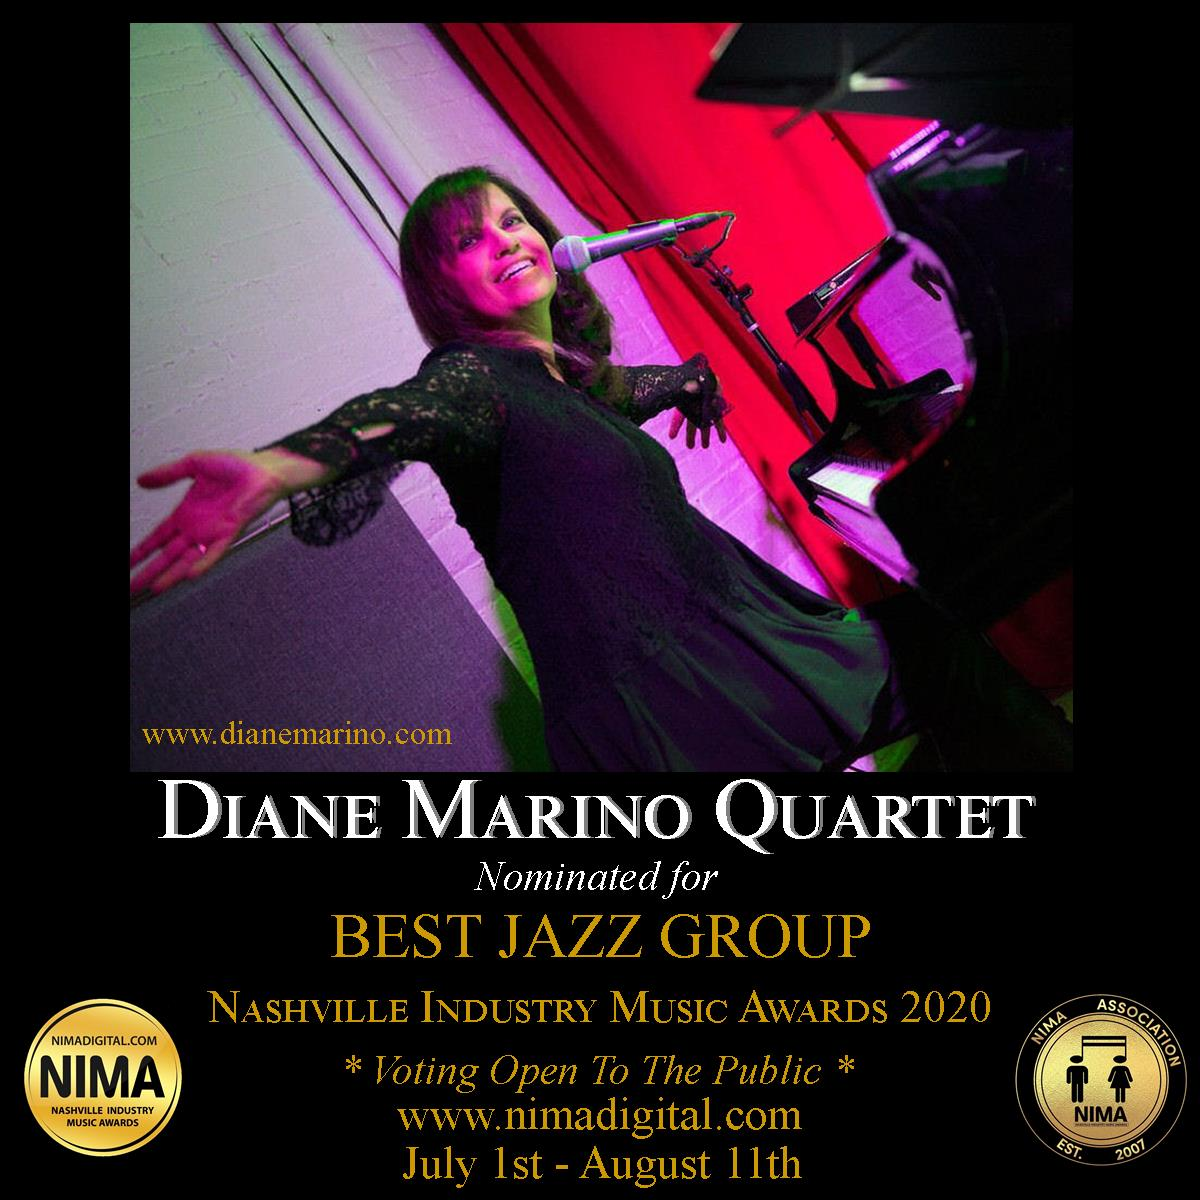 Diane Marino Quartet nominated as Best Jazz Group for Nashville Industry Music Awards 2020